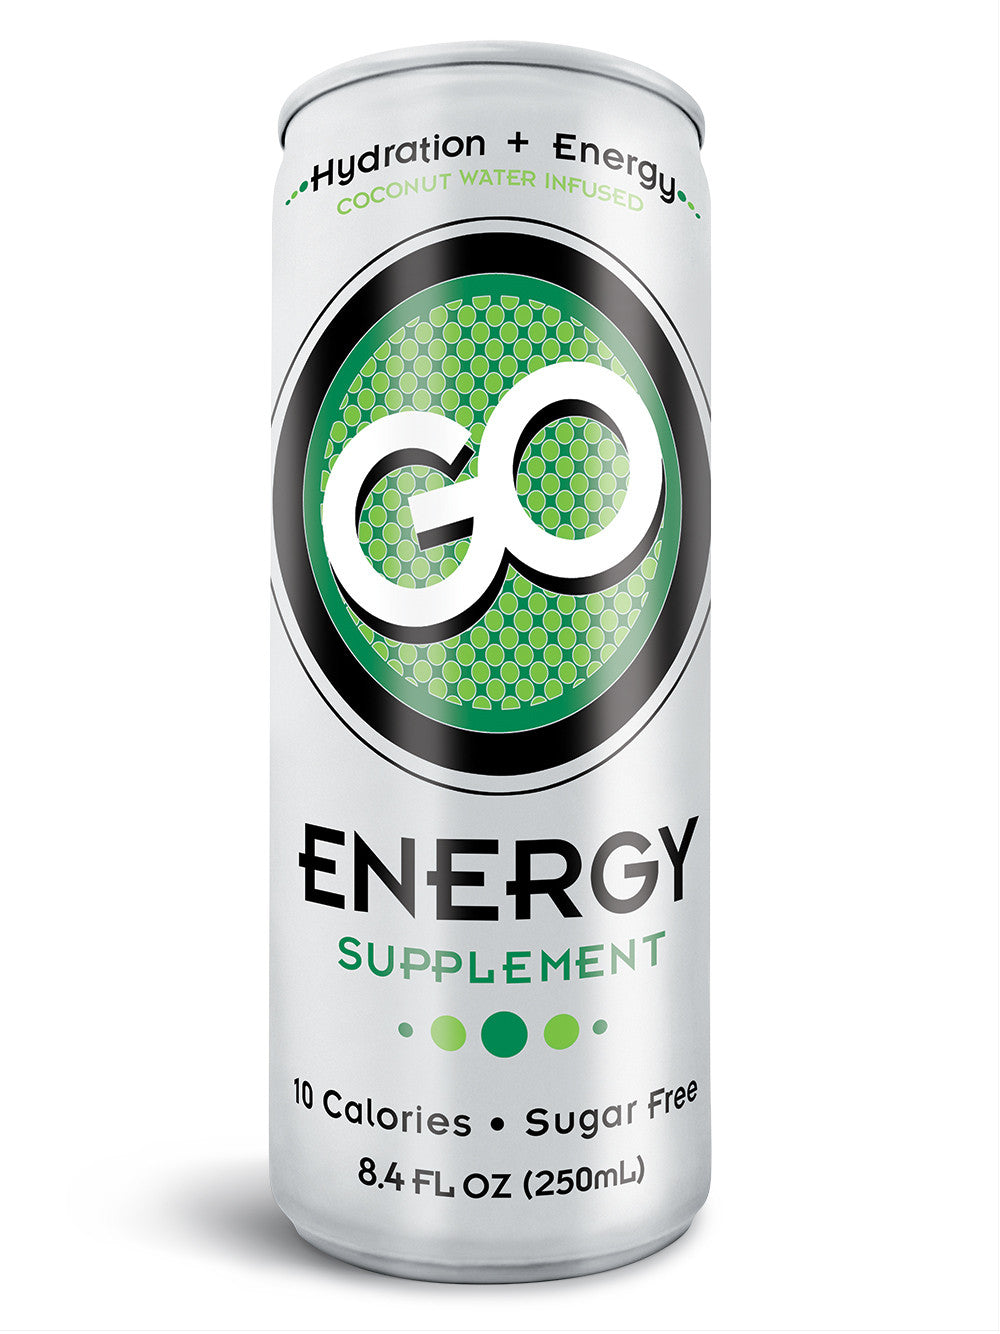 GO Energy - (Qty: 48 cans, 8.4 oz) - FREE SHIPPING